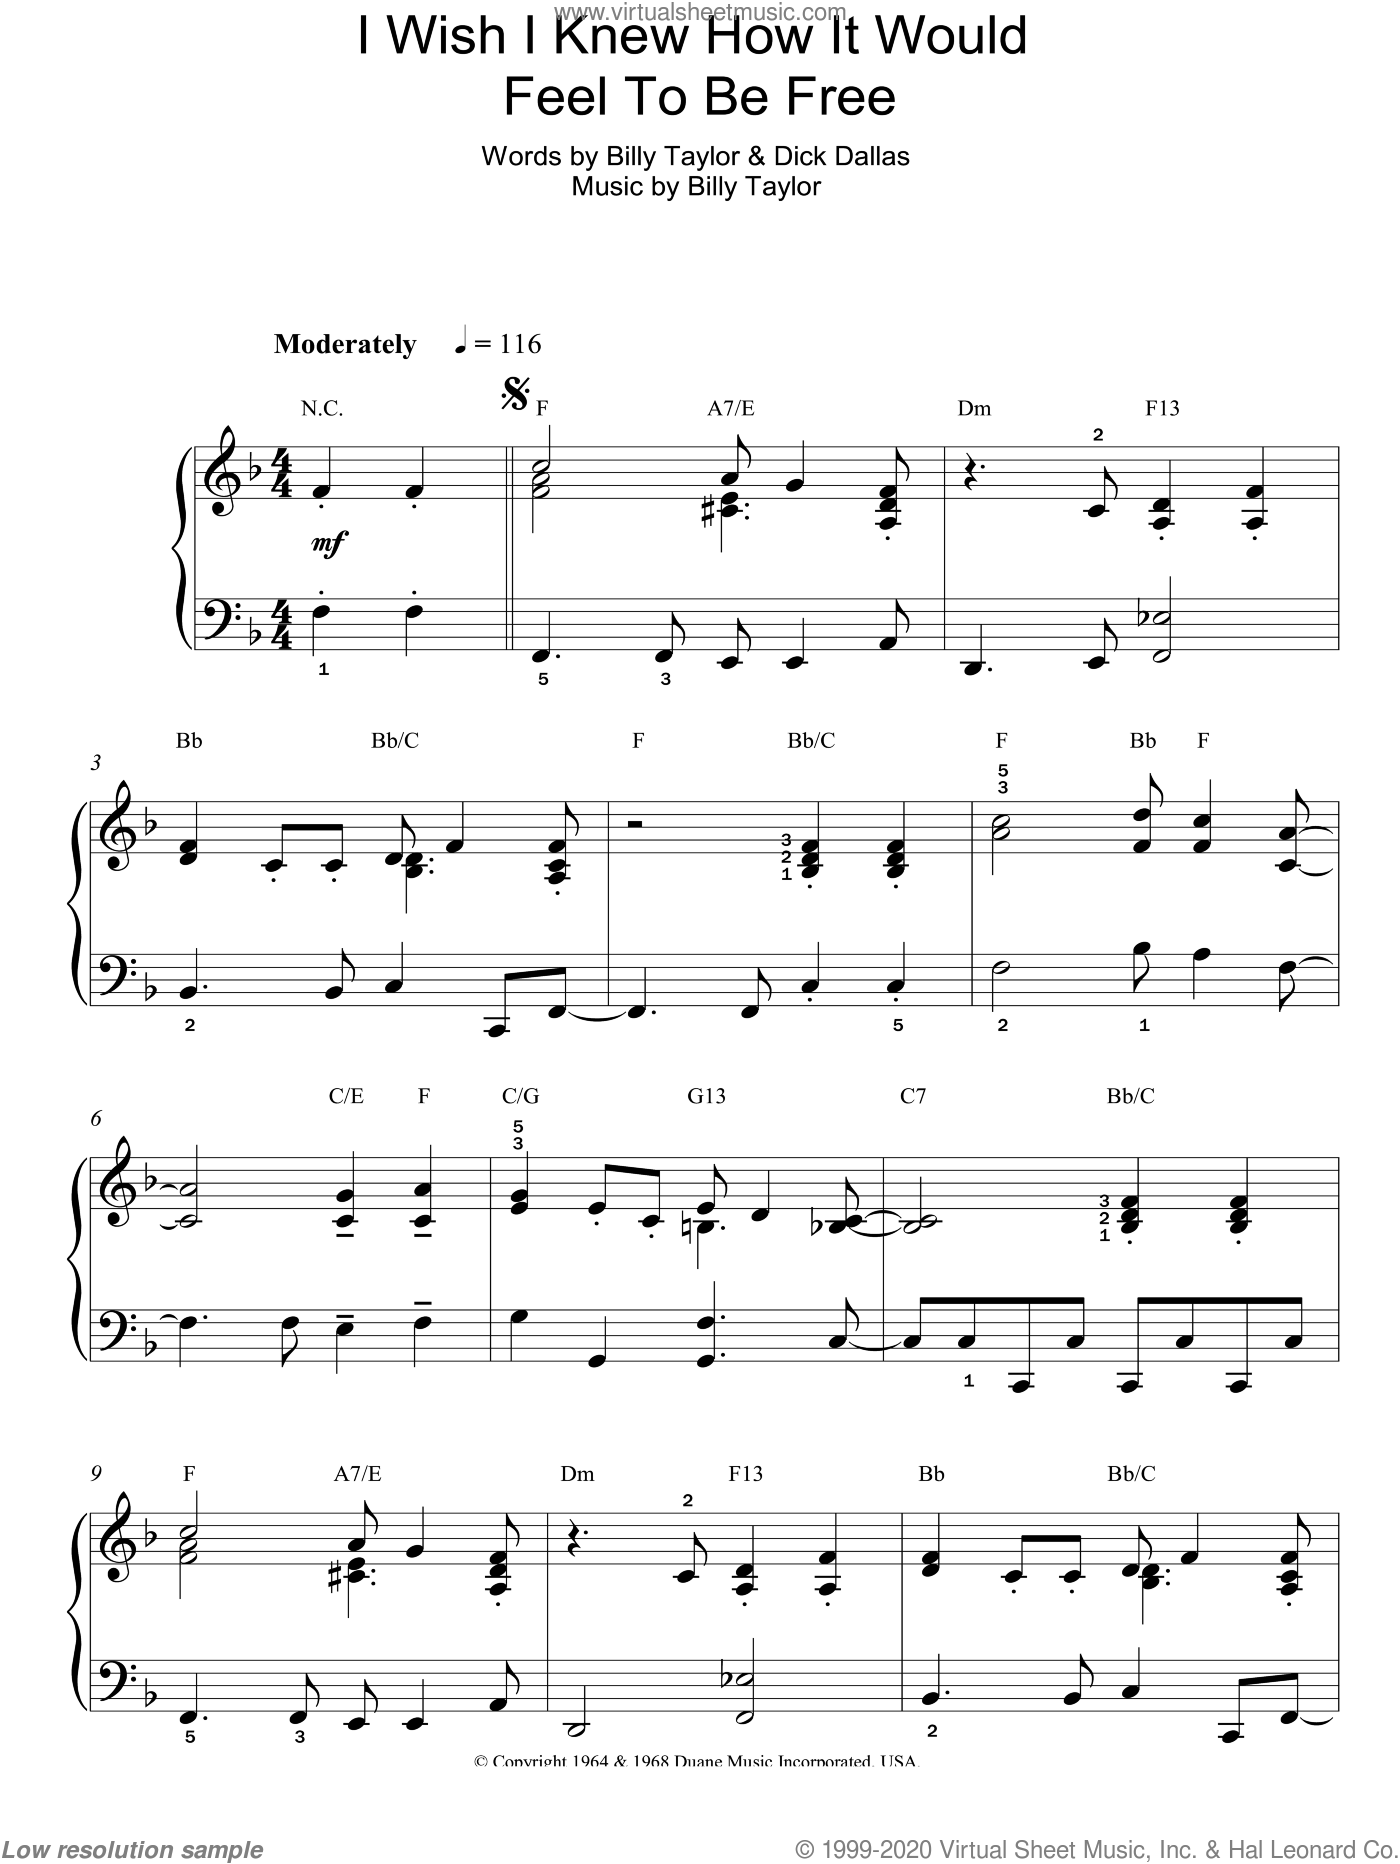 I Wish I Knew How It Would Feel To Be Free sheet music for piano solo by Billy Taylor, Nina Simone and Dick Dallas. Score Image Preview.